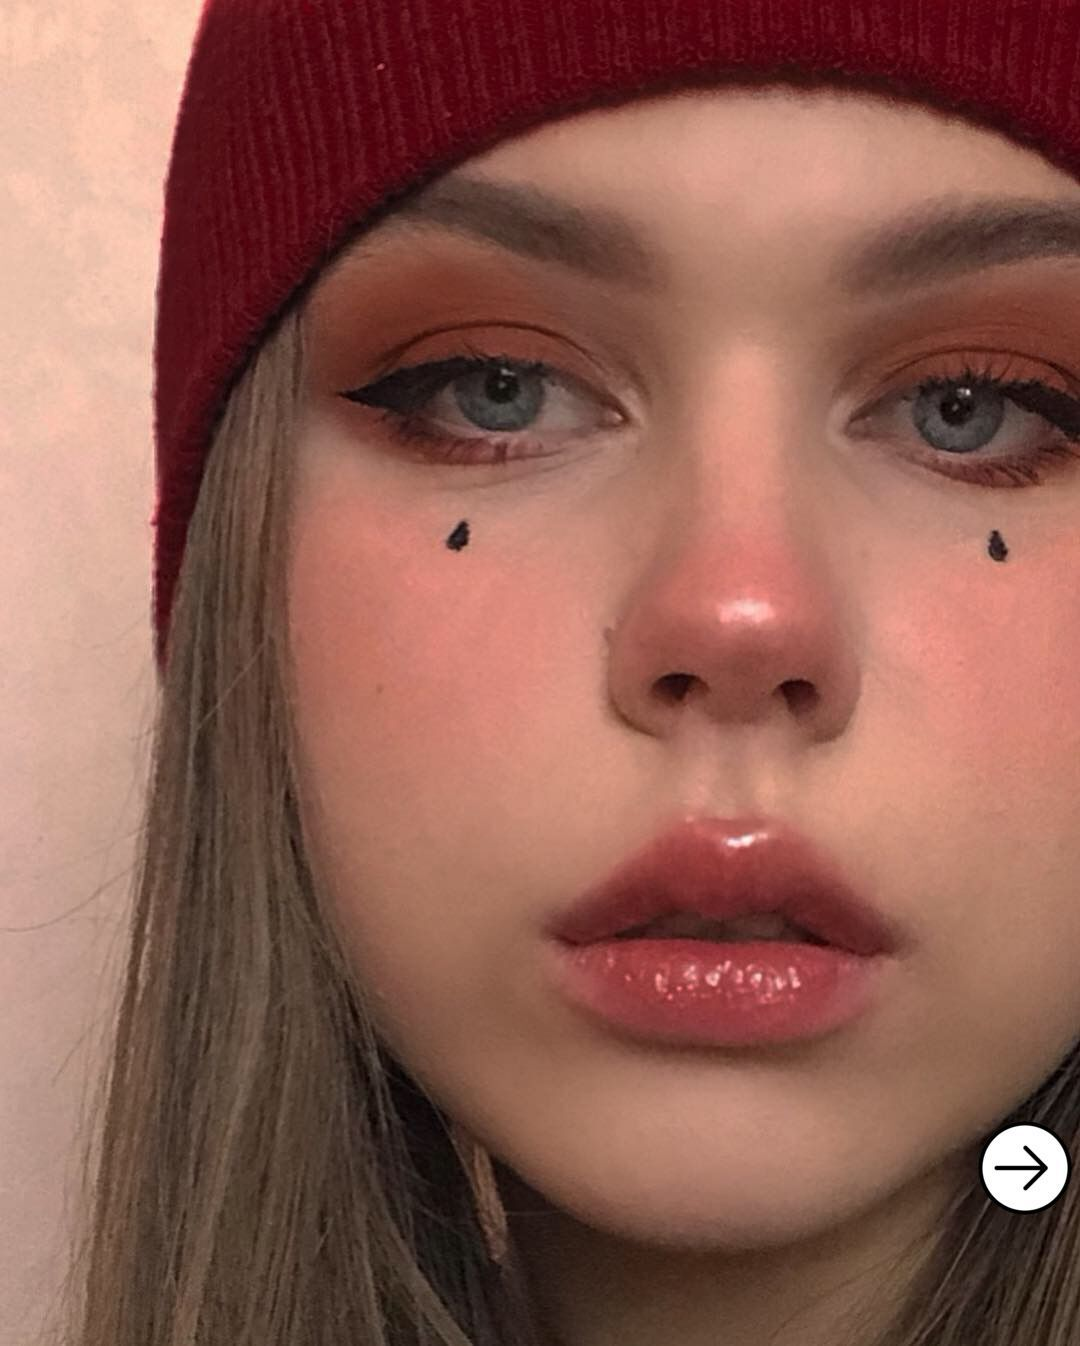 20 Inspiration Of Soft Girl Makeup You Can Do In 2020 In 2020 Edgy Makeup Girls Makeup Makeup Inspiration